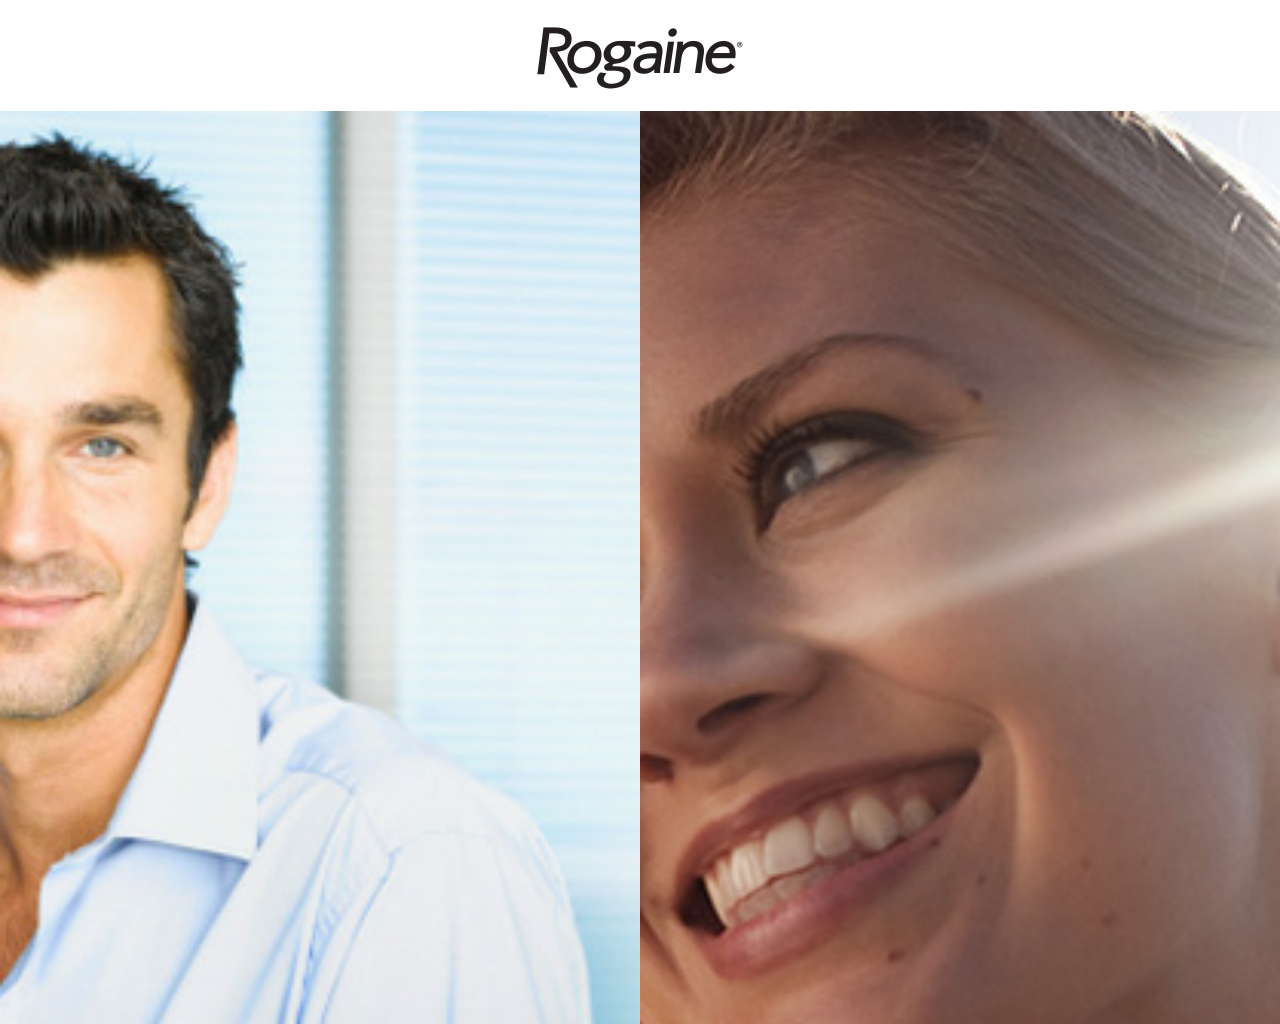 Rogaine-Advertising-Reviews-Pricing